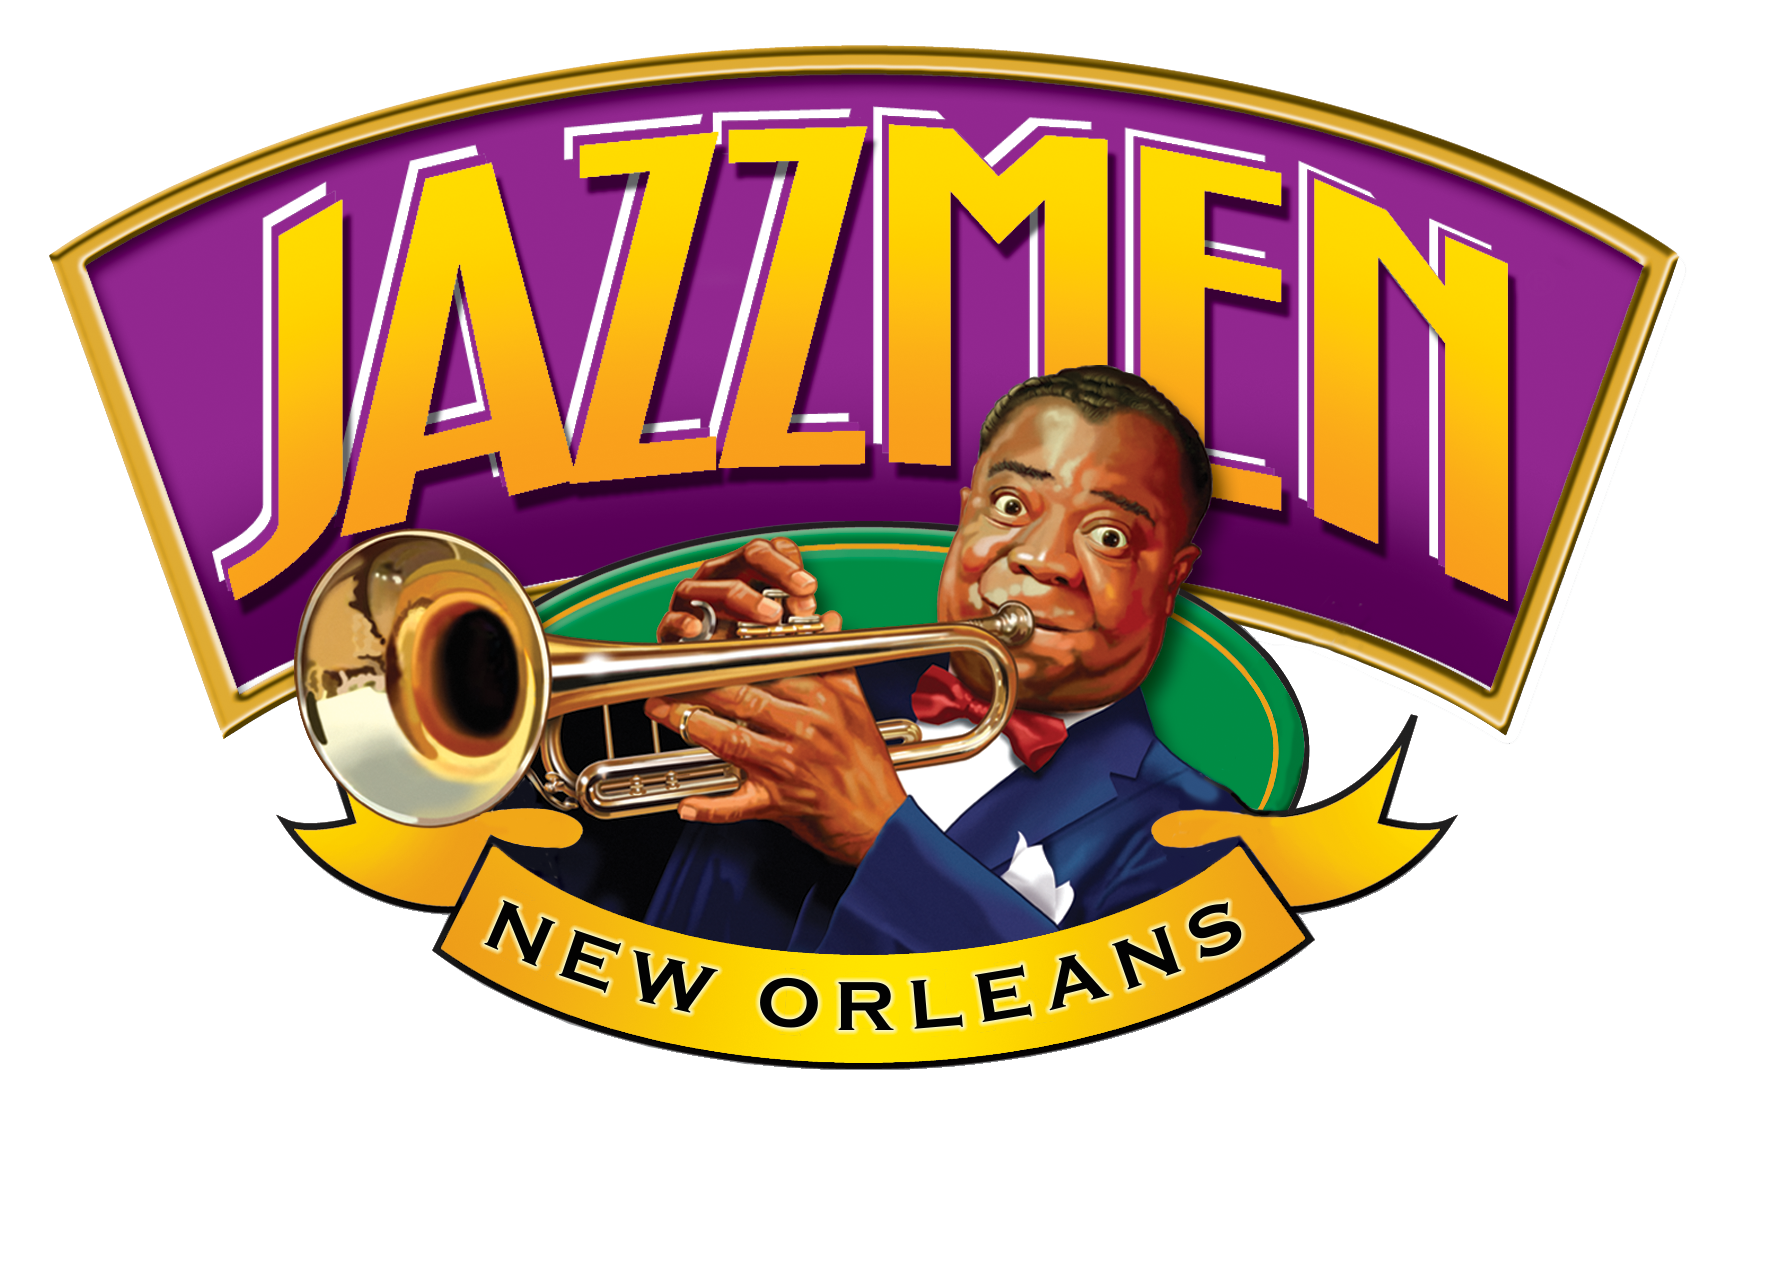 Jazzmen Rice Logo - NO ® or LA.png